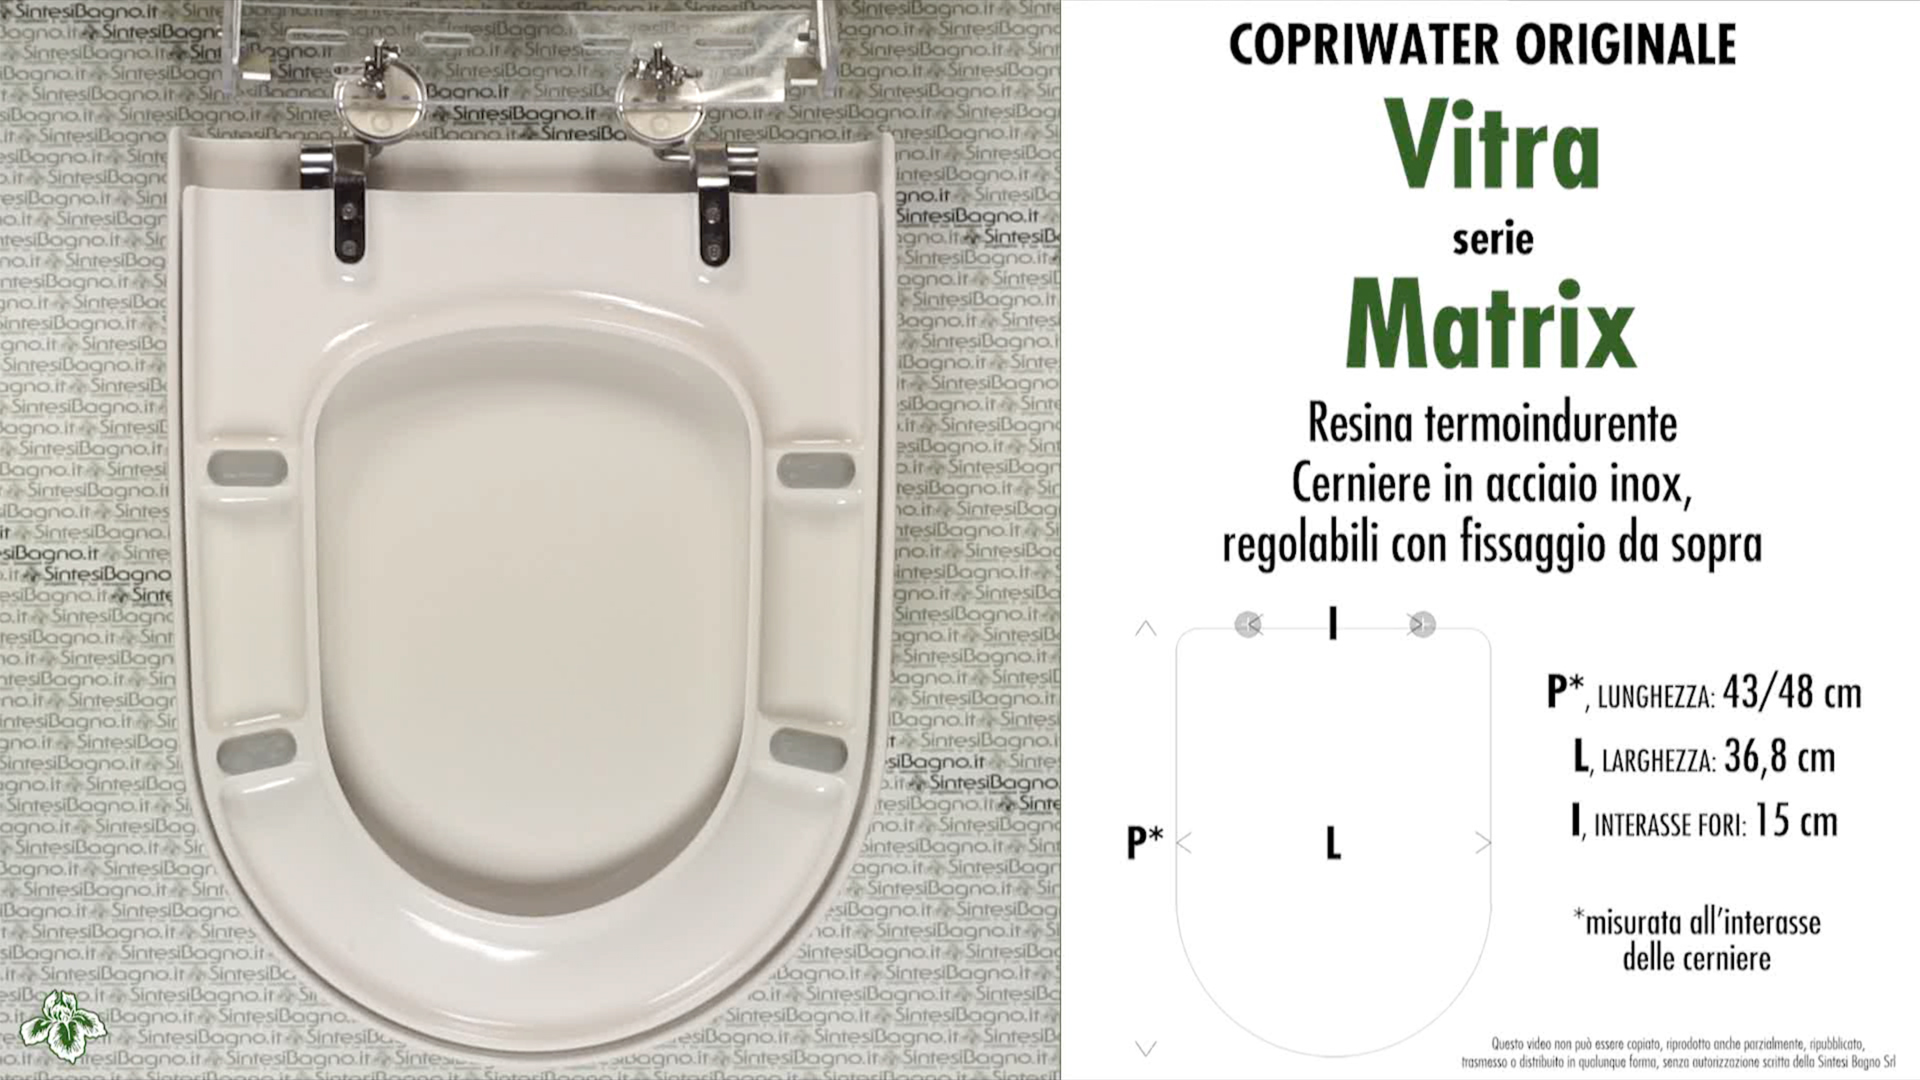 Swell Copriwater Per Wc Matrix Vitra Ricambio Originale Soft Close Duroplast Sintesibagno Shop Online Beatyapartments Chair Design Images Beatyapartmentscom